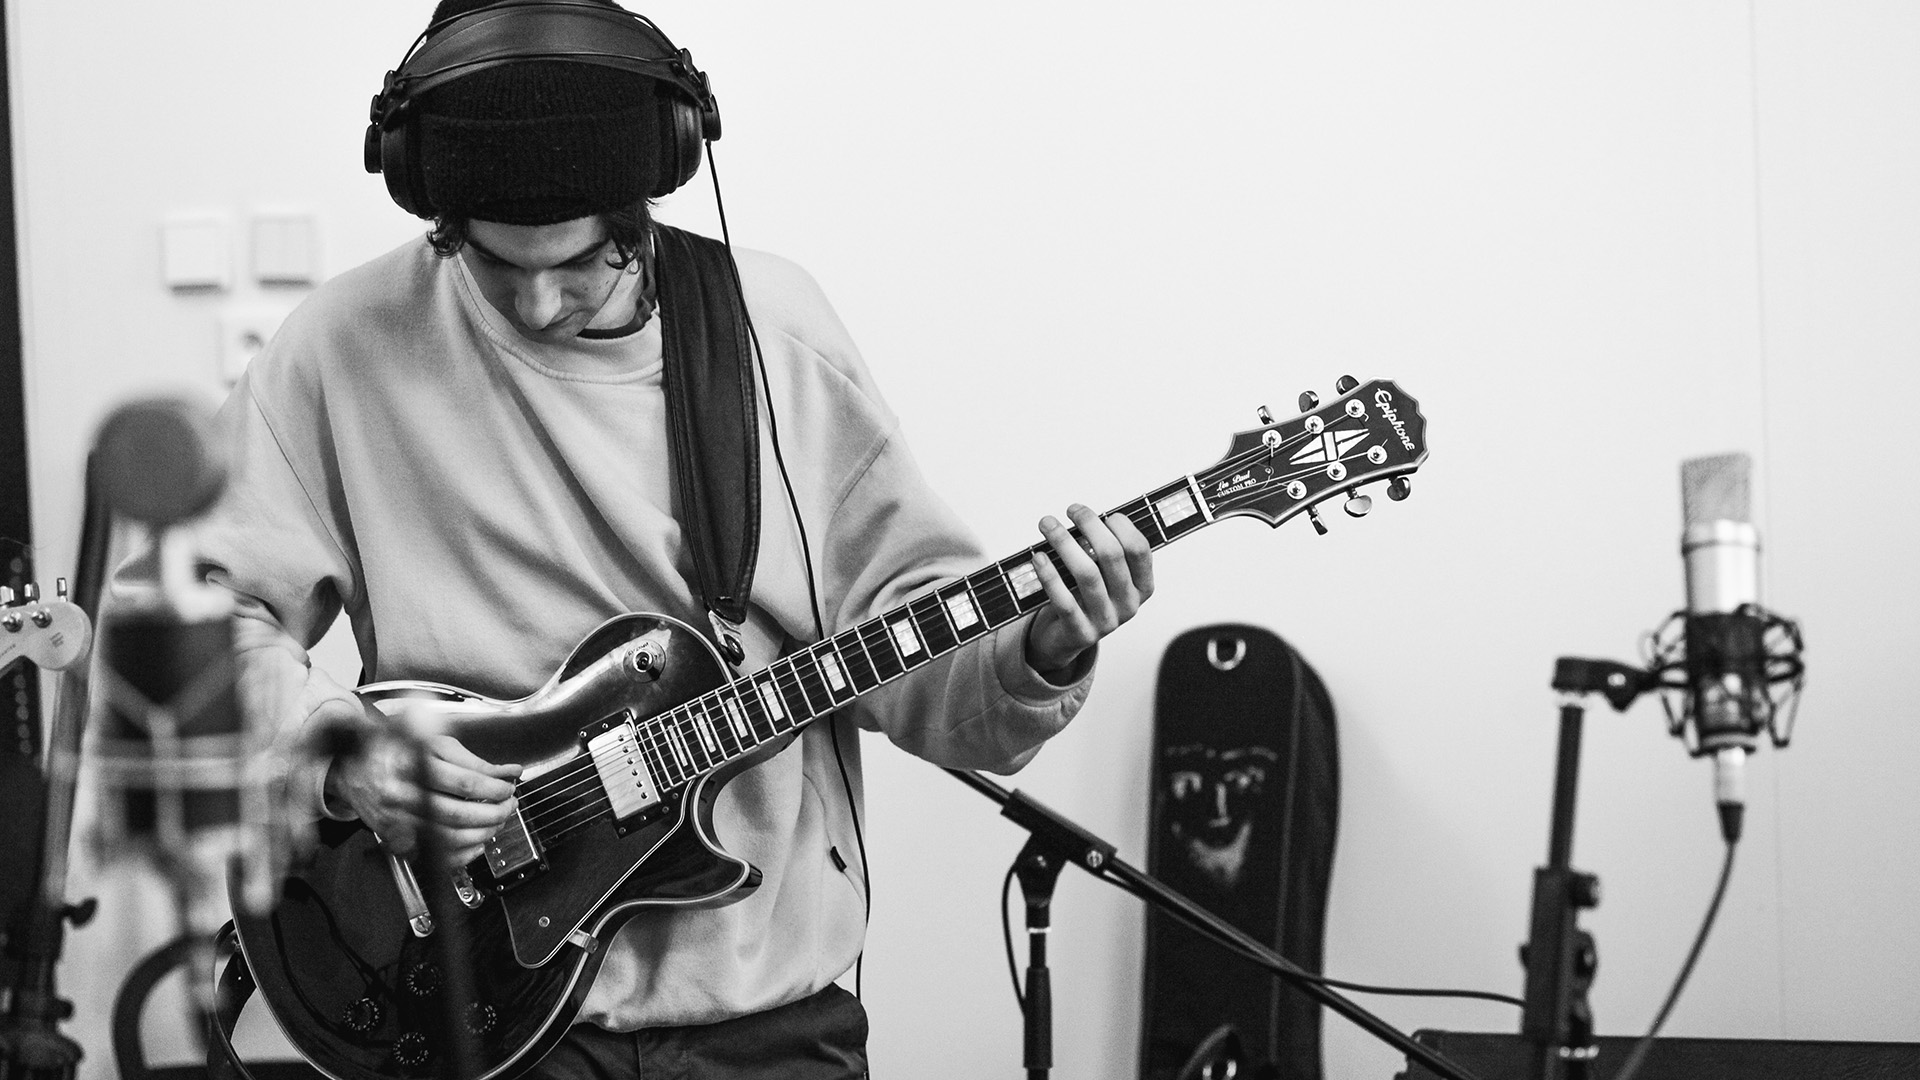 young guitarist recording his own song in a recording session